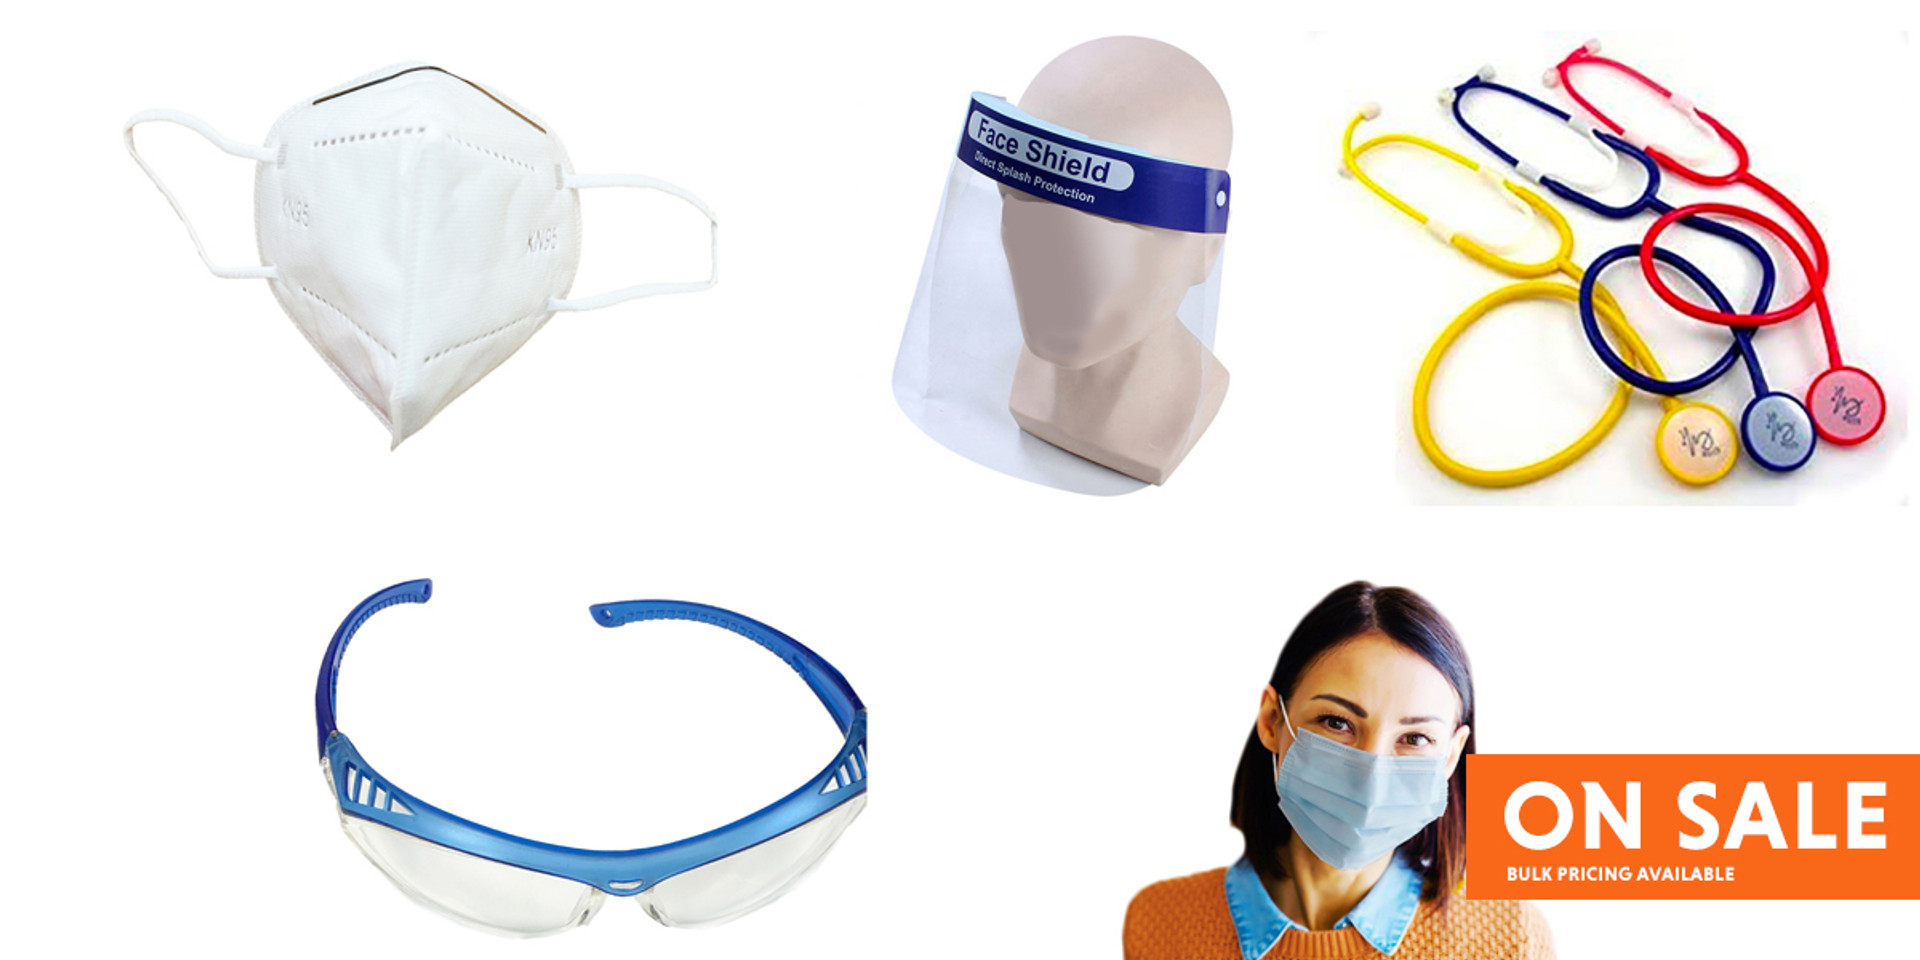 PPE On Sale